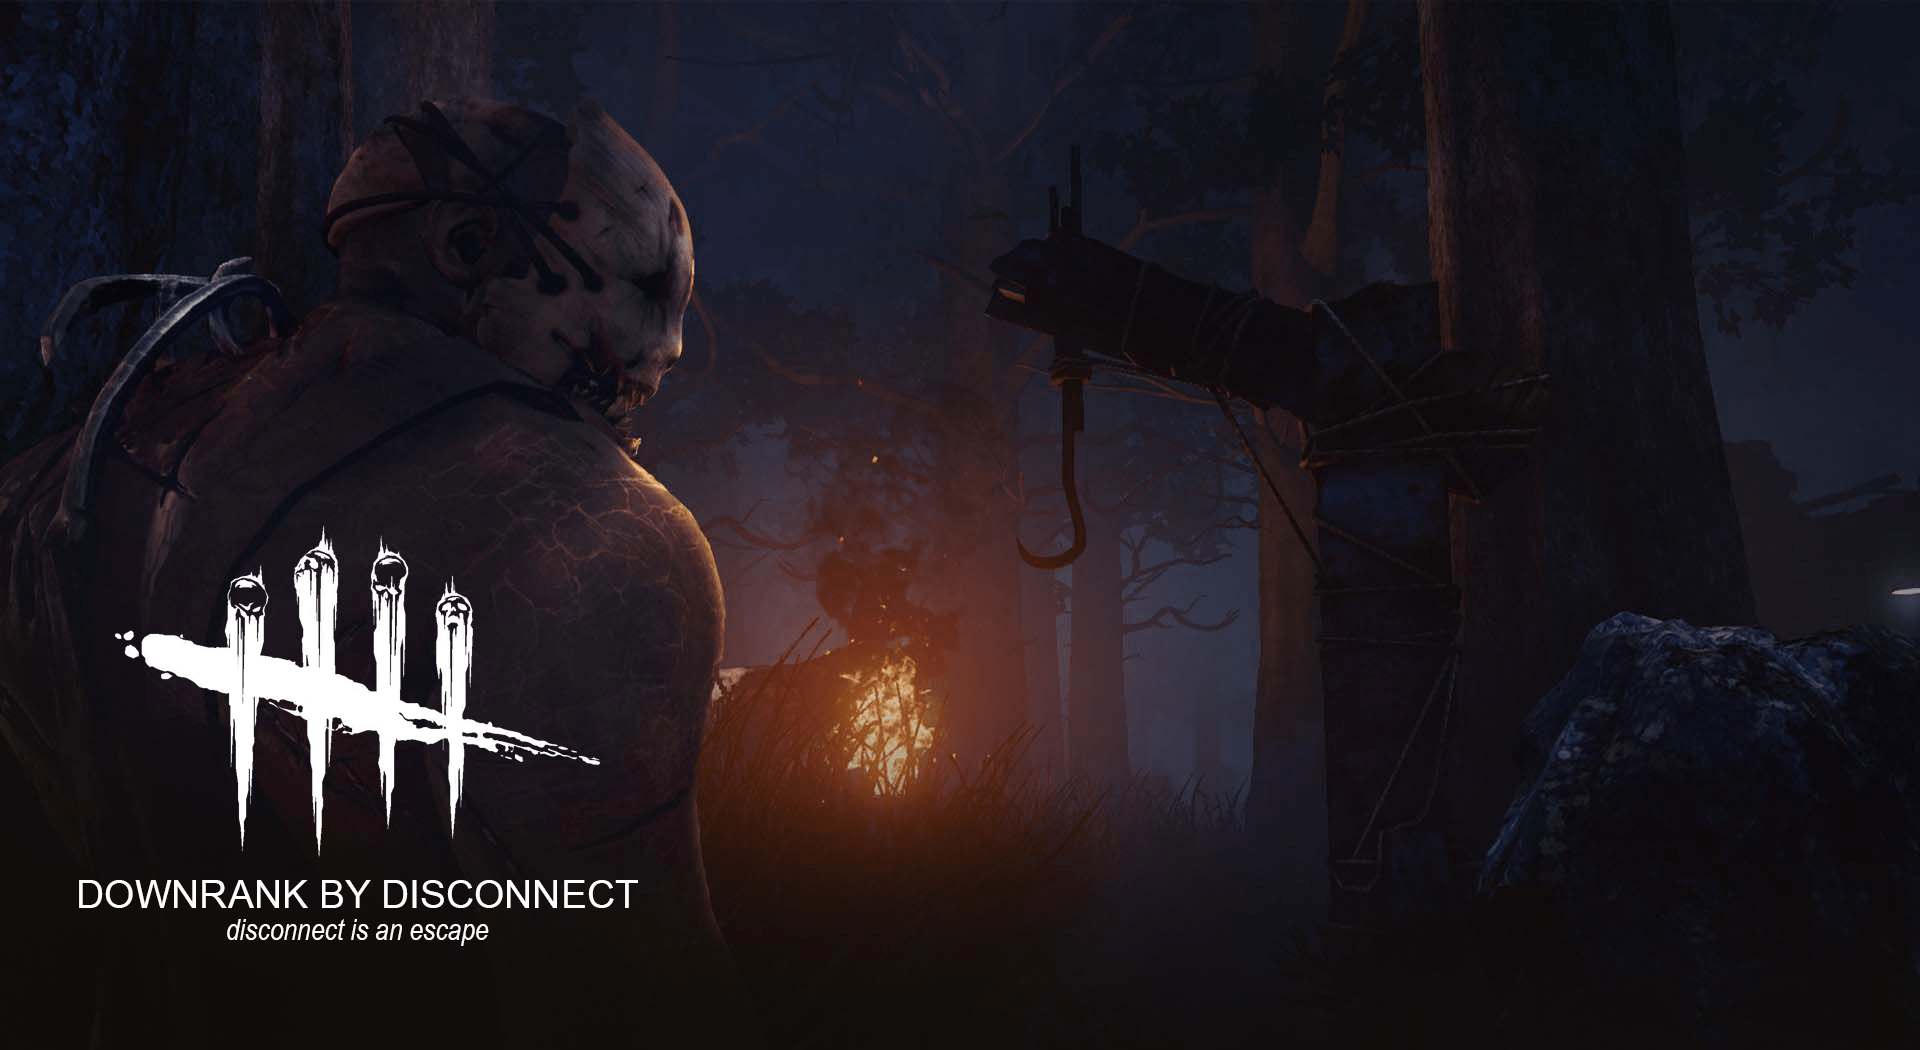 True Dead By Daylight Wallpaper Credits To Twitch Sxyhxy